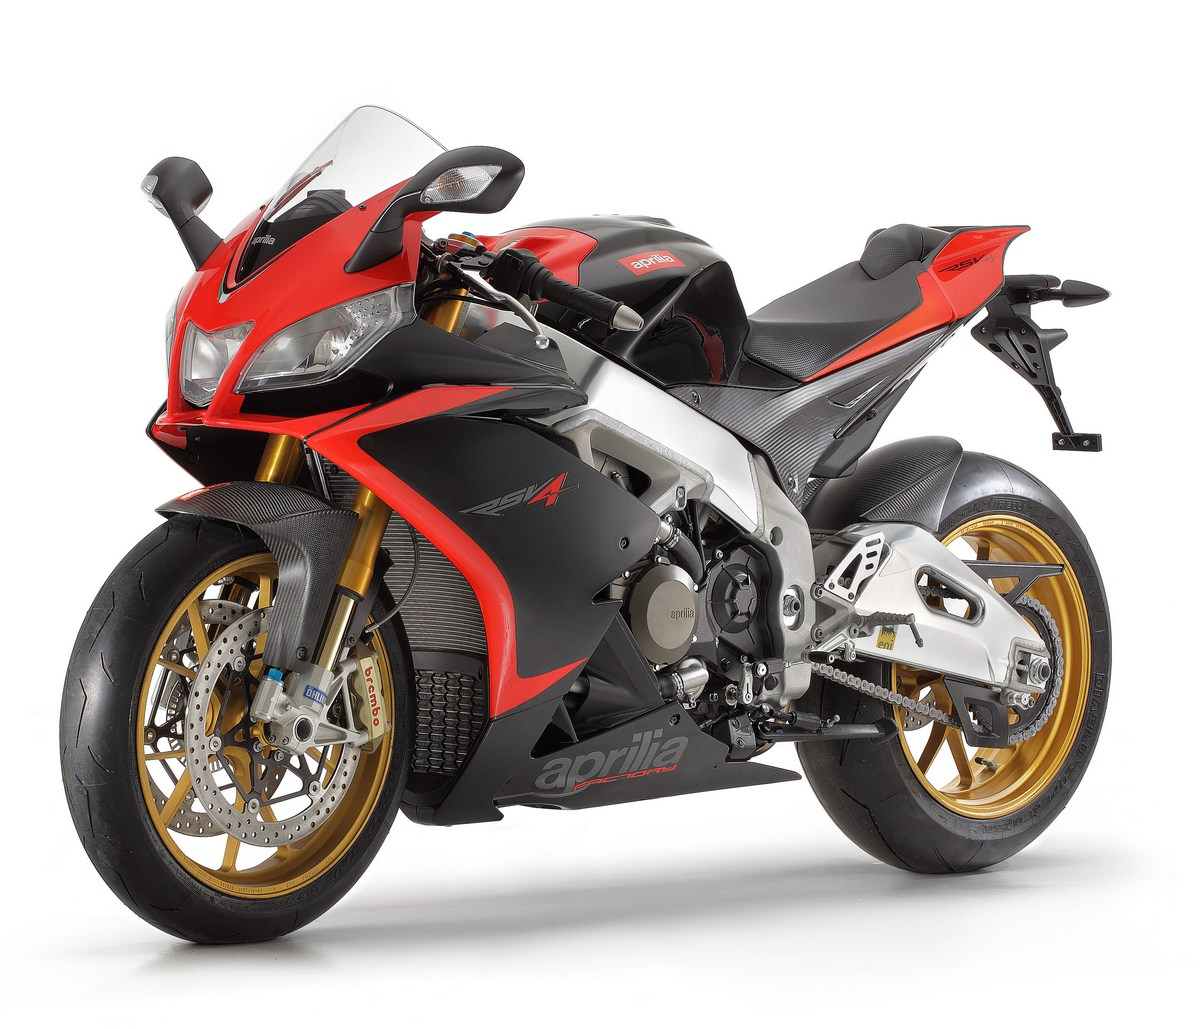 2012 aprilia rsv4. Black Bedroom Furniture Sets. Home Design Ideas